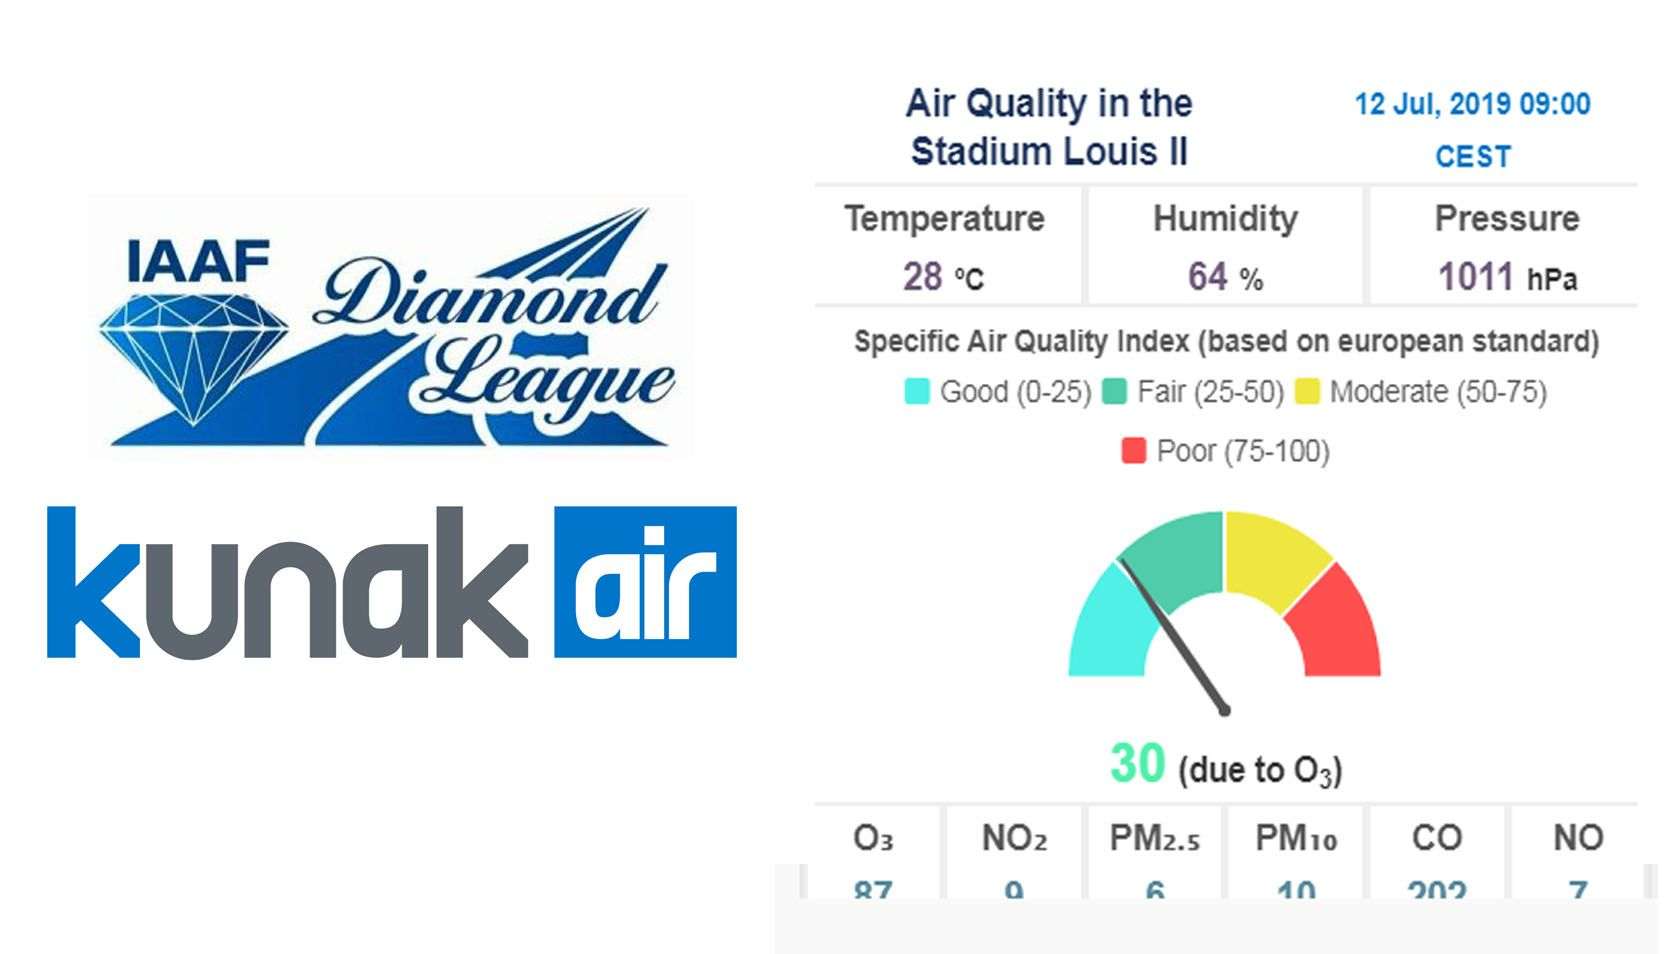 Live Streaming: air quality data at the Diamond League in